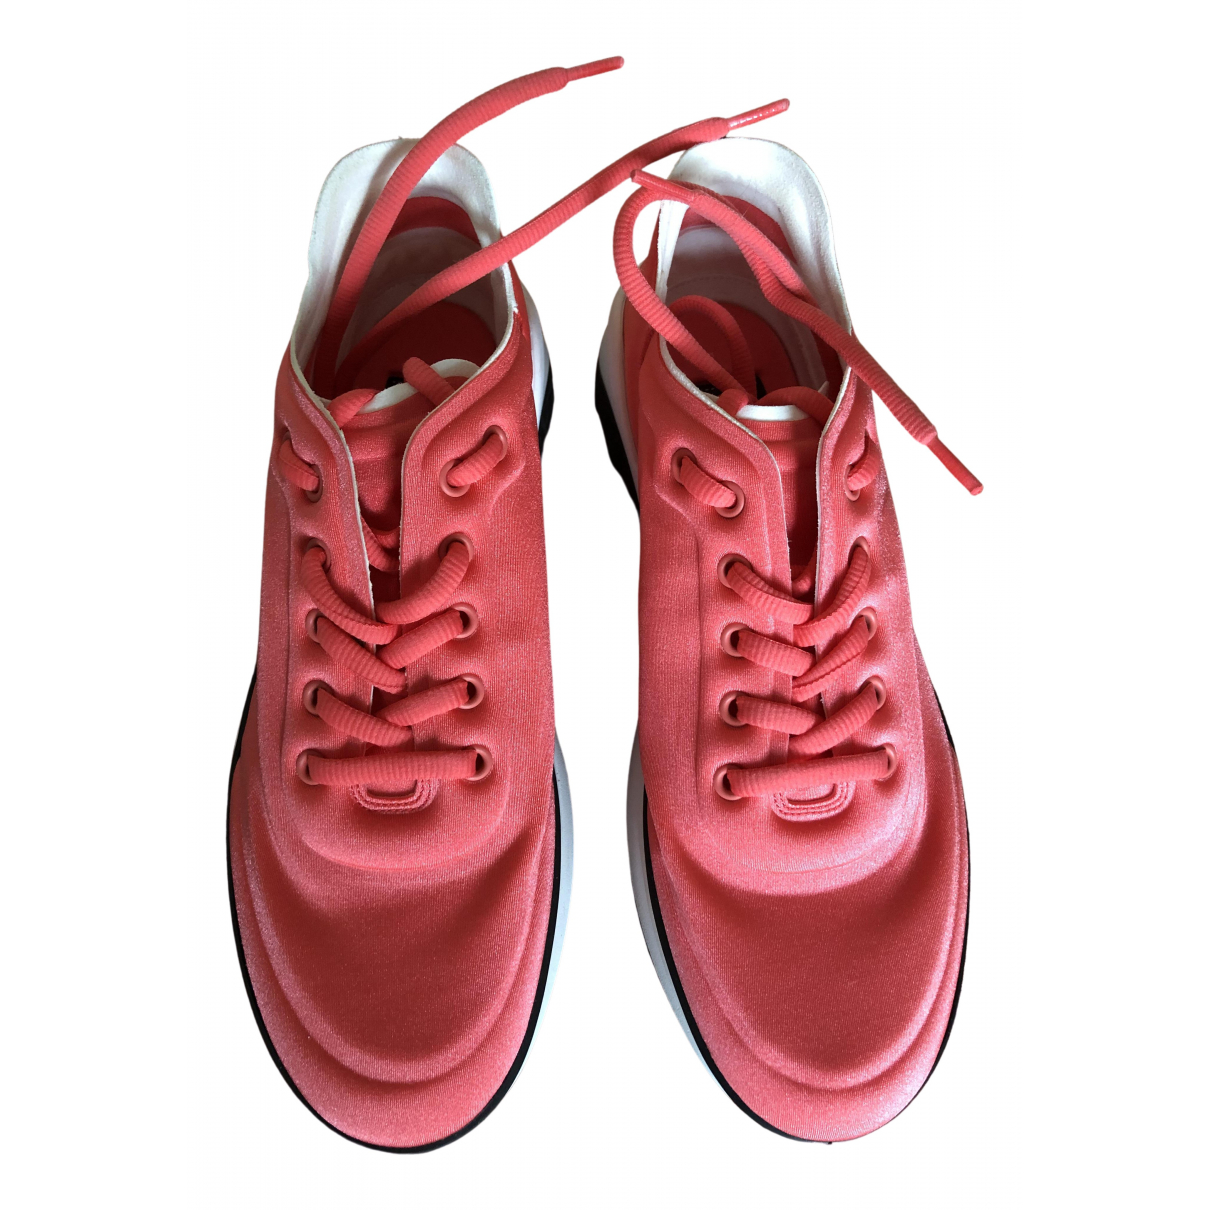 Chanel \N Sneakers in Polyester